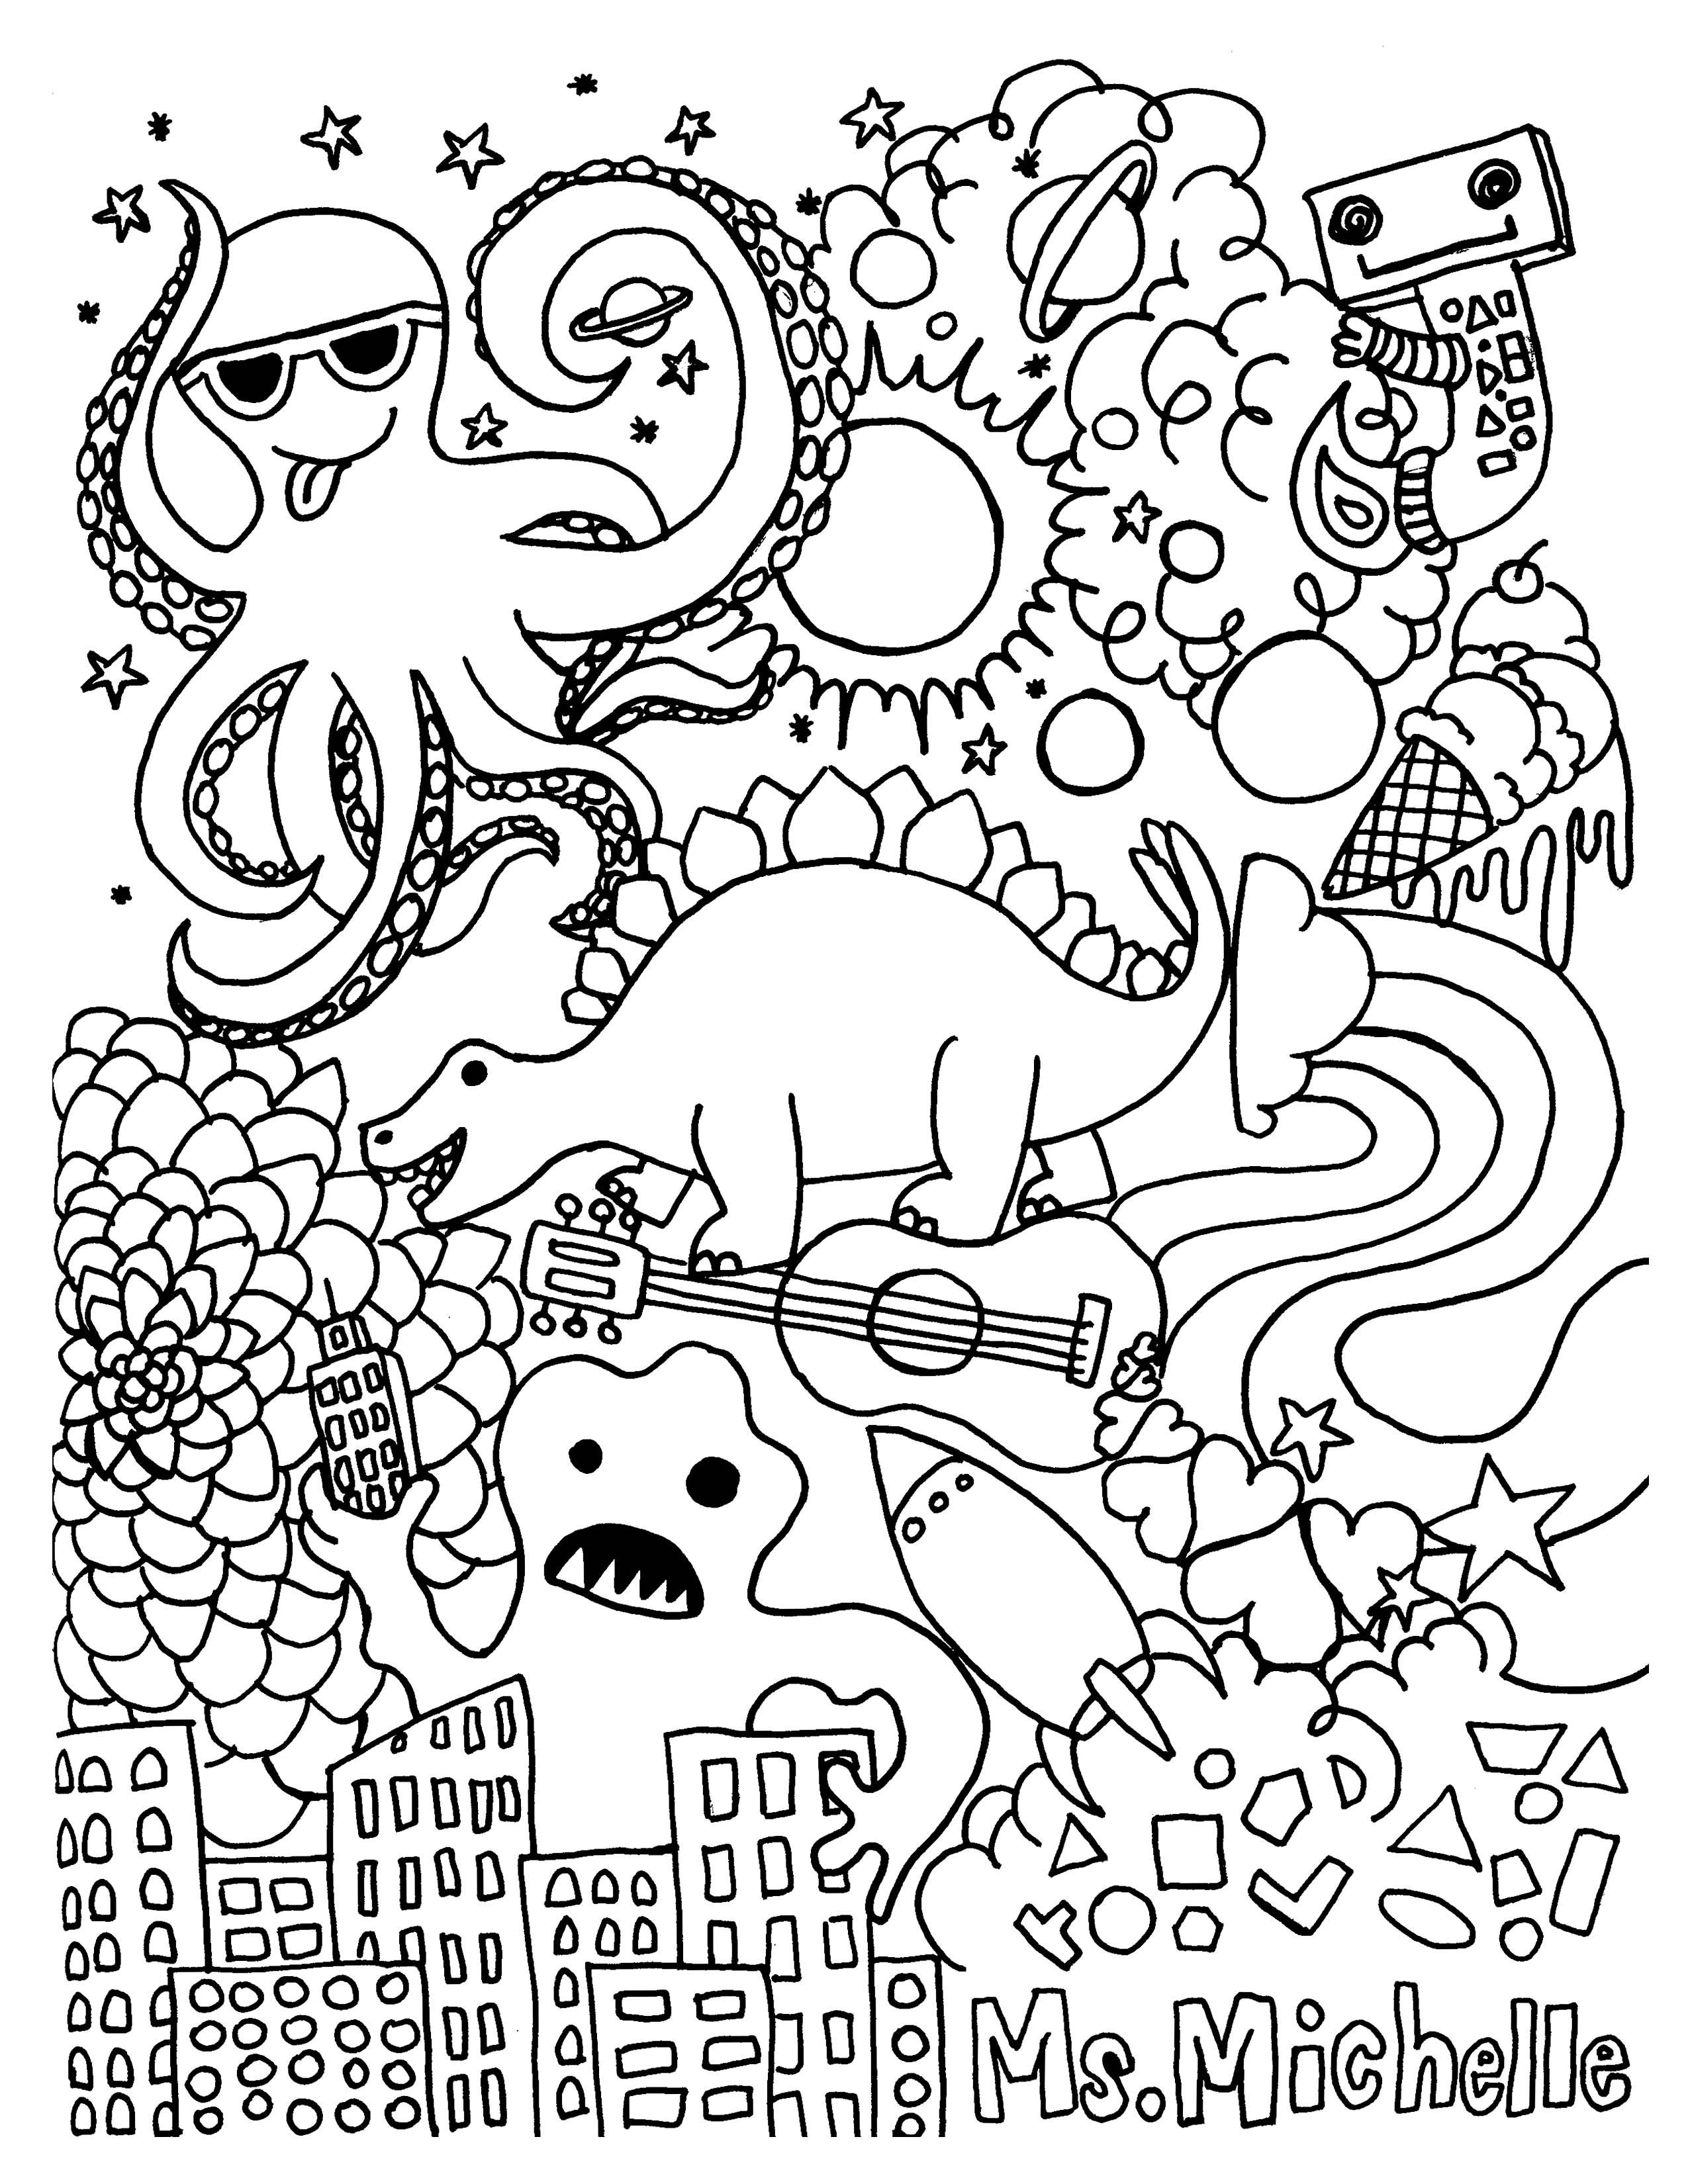 Spring coloring pages for elementary students - Spring Coloring Pages For Elementary Students Printable Coloring Pages For 1st Graders Atkinson Flowers